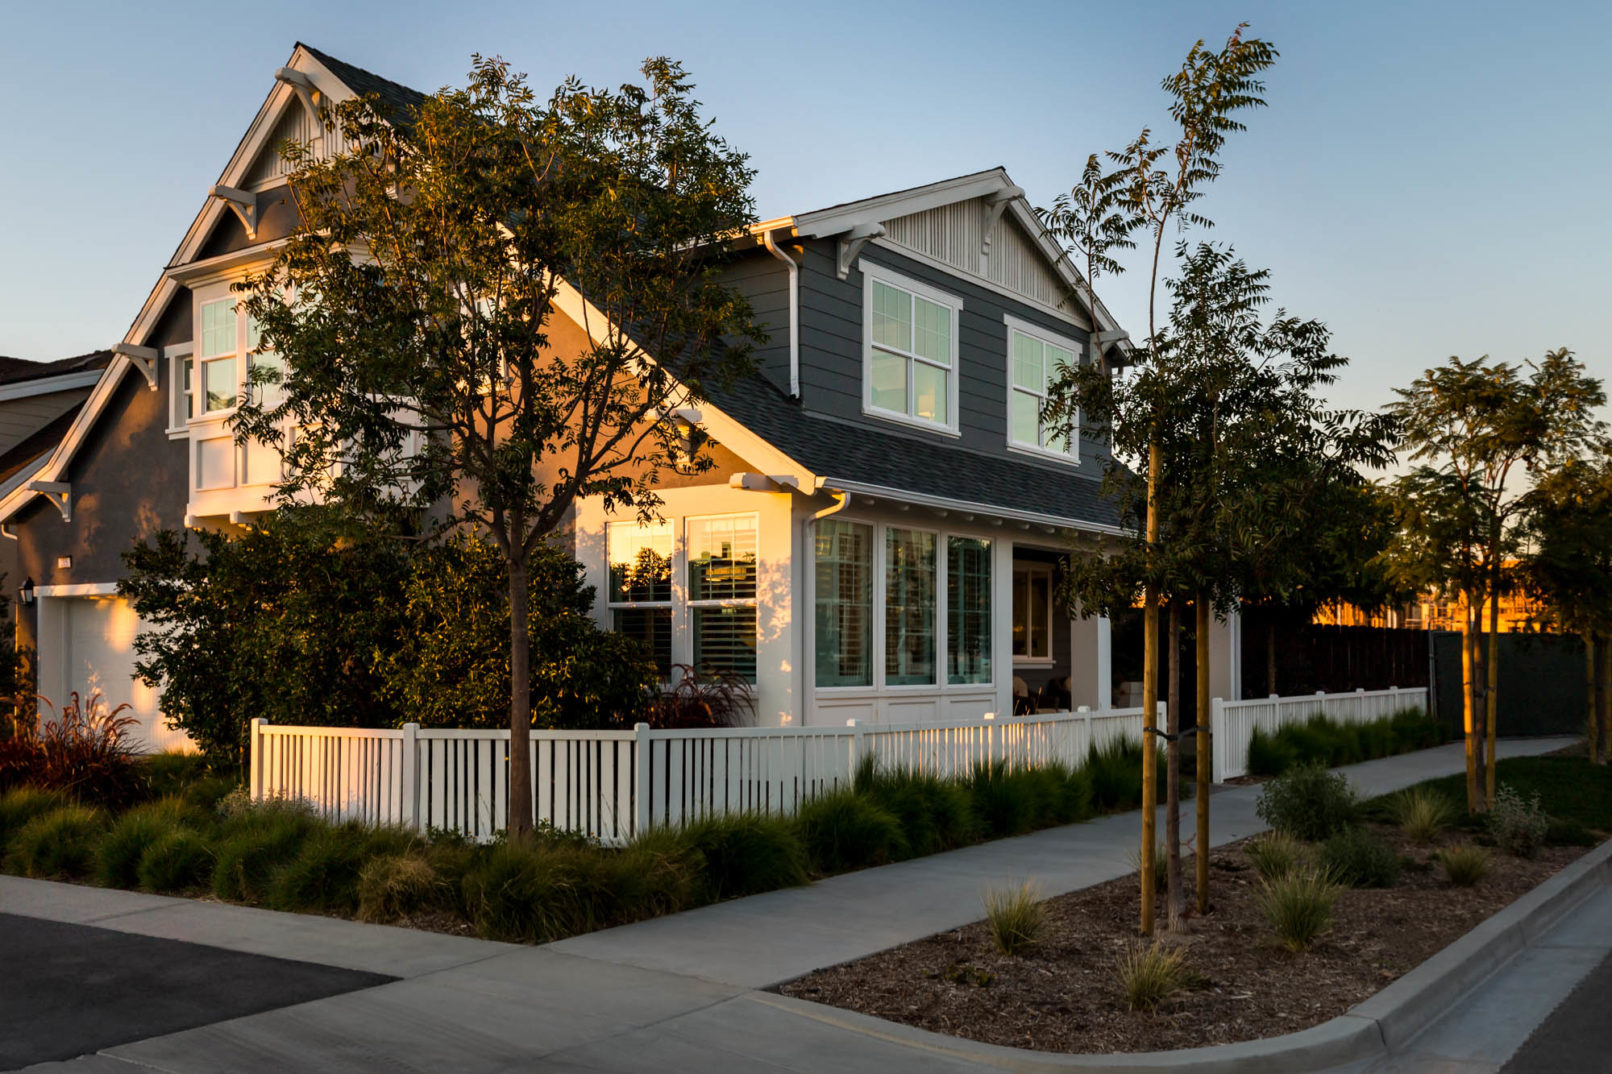 Orange county ranch house eric norton photography for Norton ranch homes